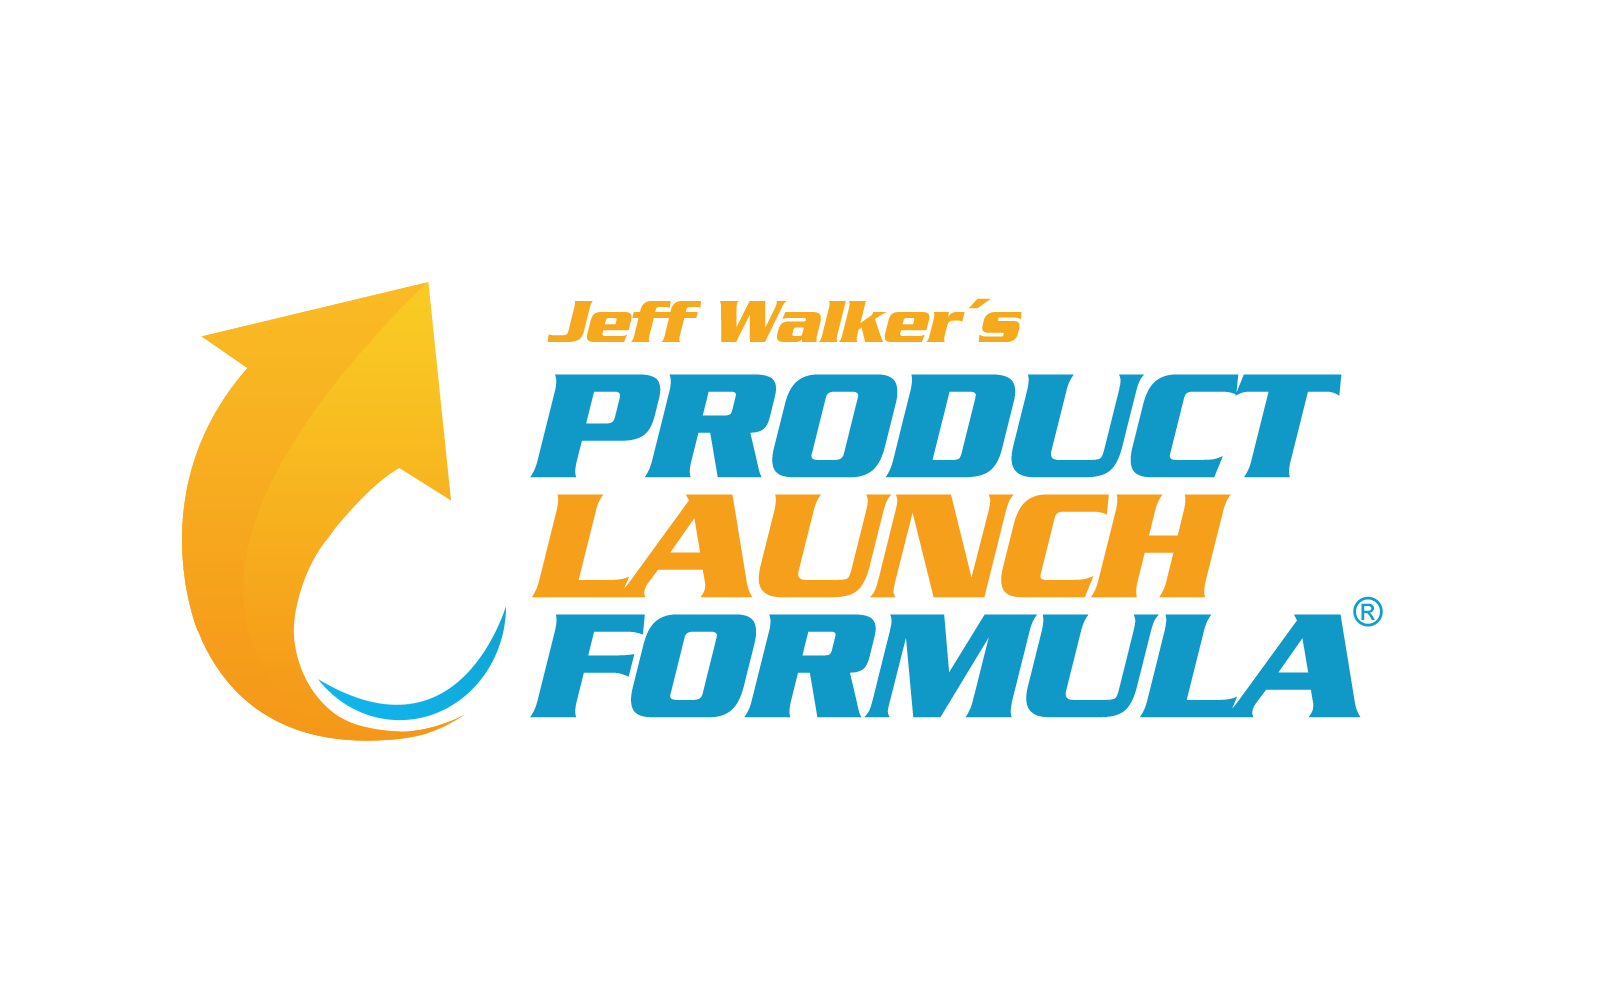 Jeff Walker's Product Launch Formula